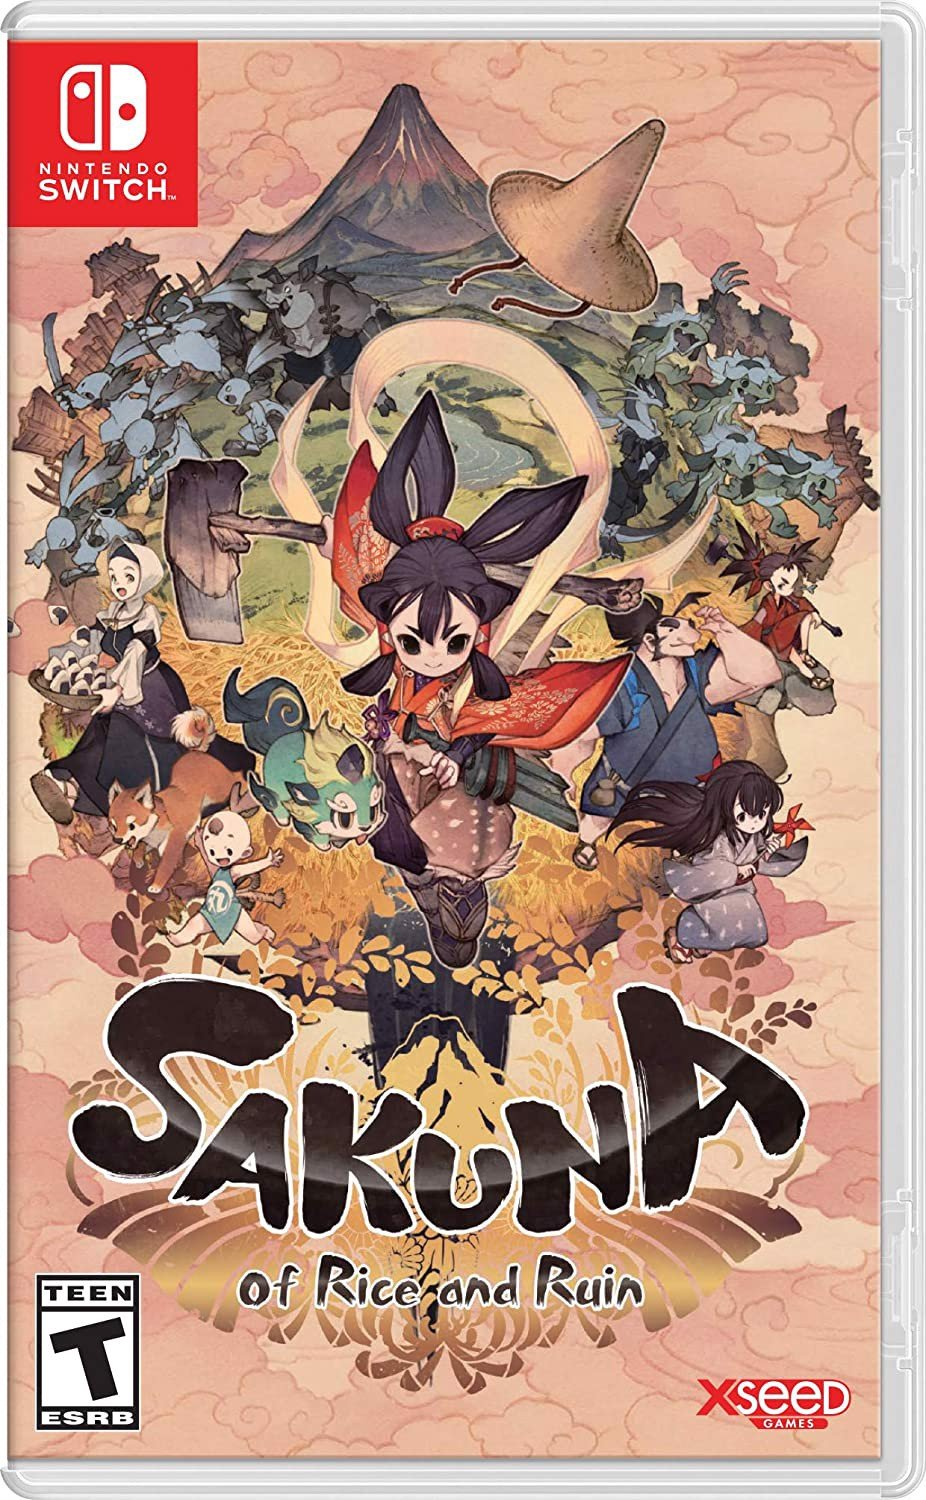 290 - Sakuna of Rice and Ruin